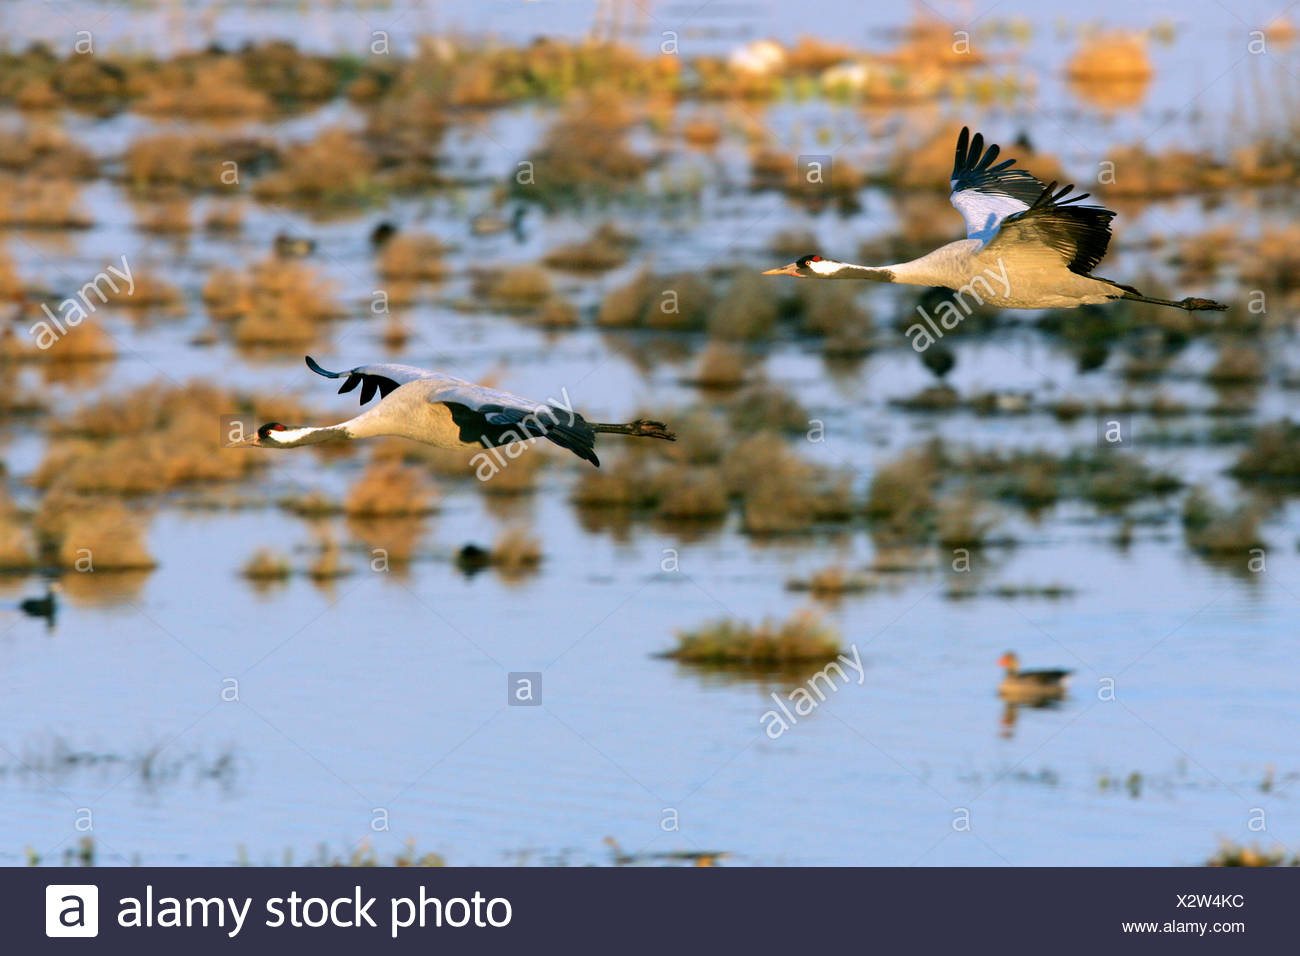 Couple of flying common cranes (Grus grus) in the morning light over the lake Hornborga - Sweden, Europe Stock Photo